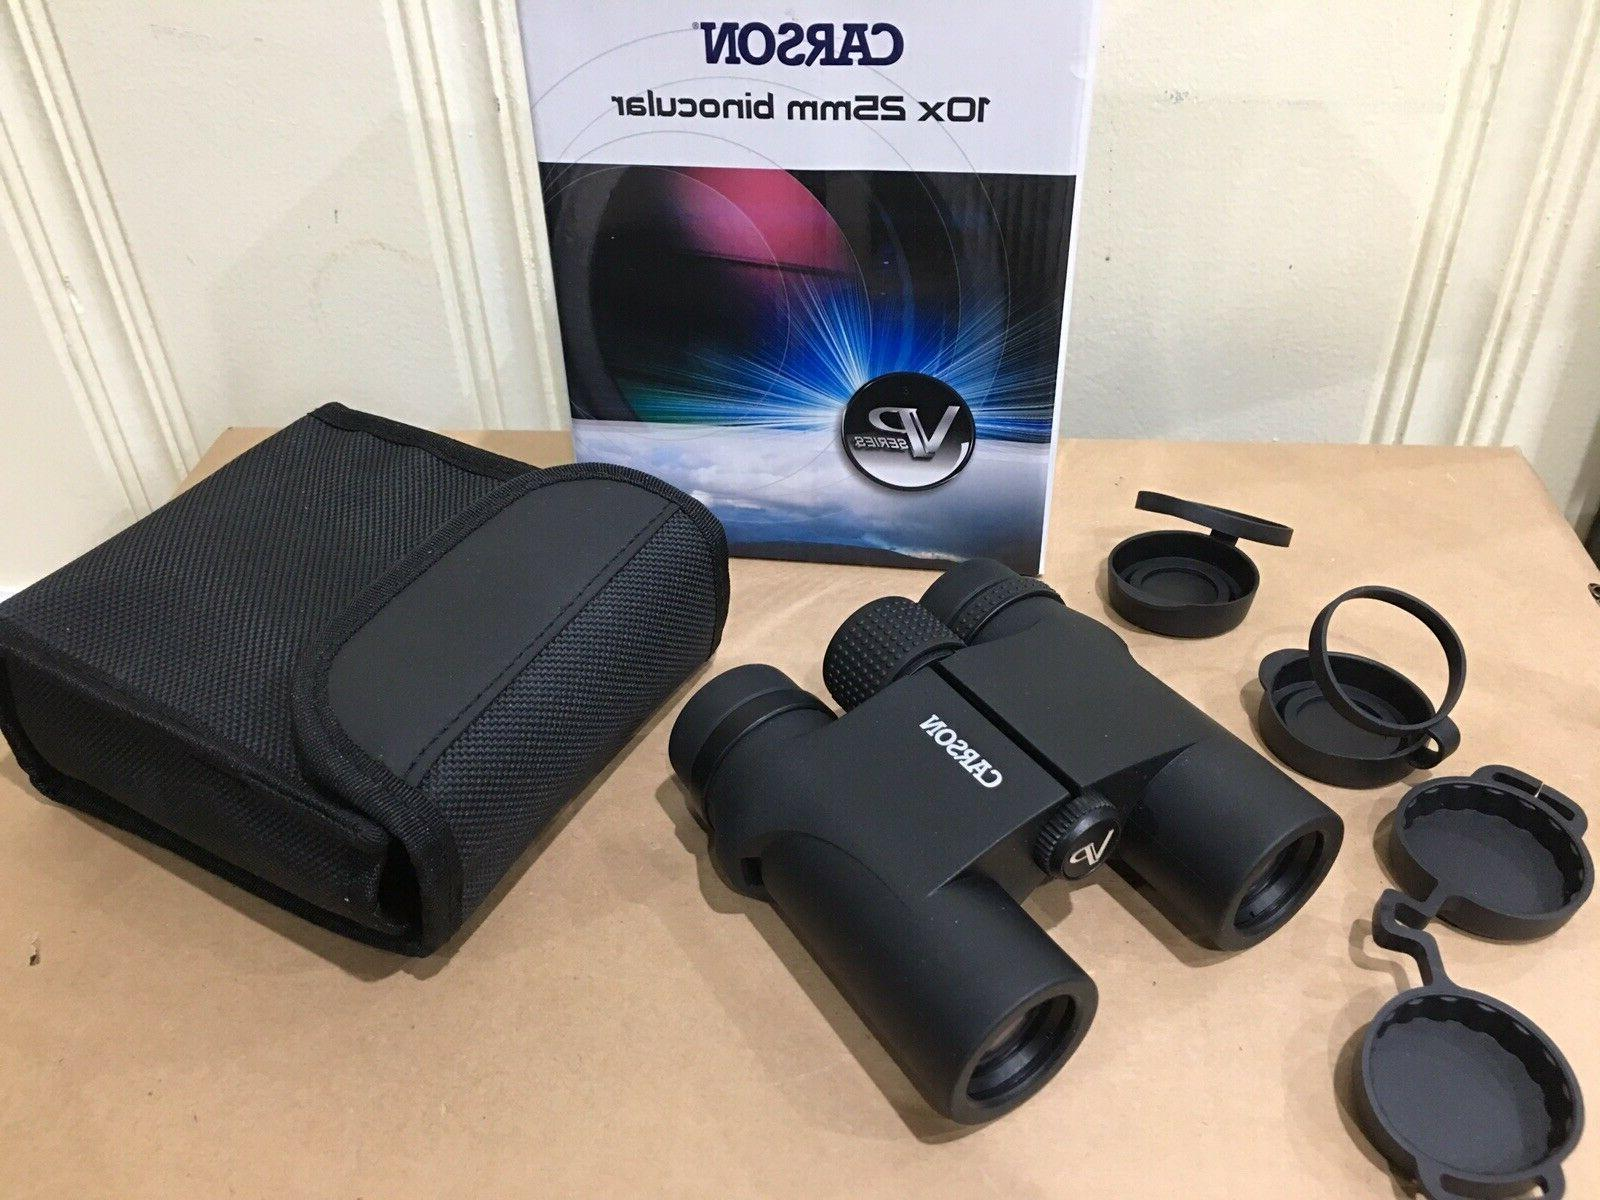 vp series 10x25mm binoculars black vp 025